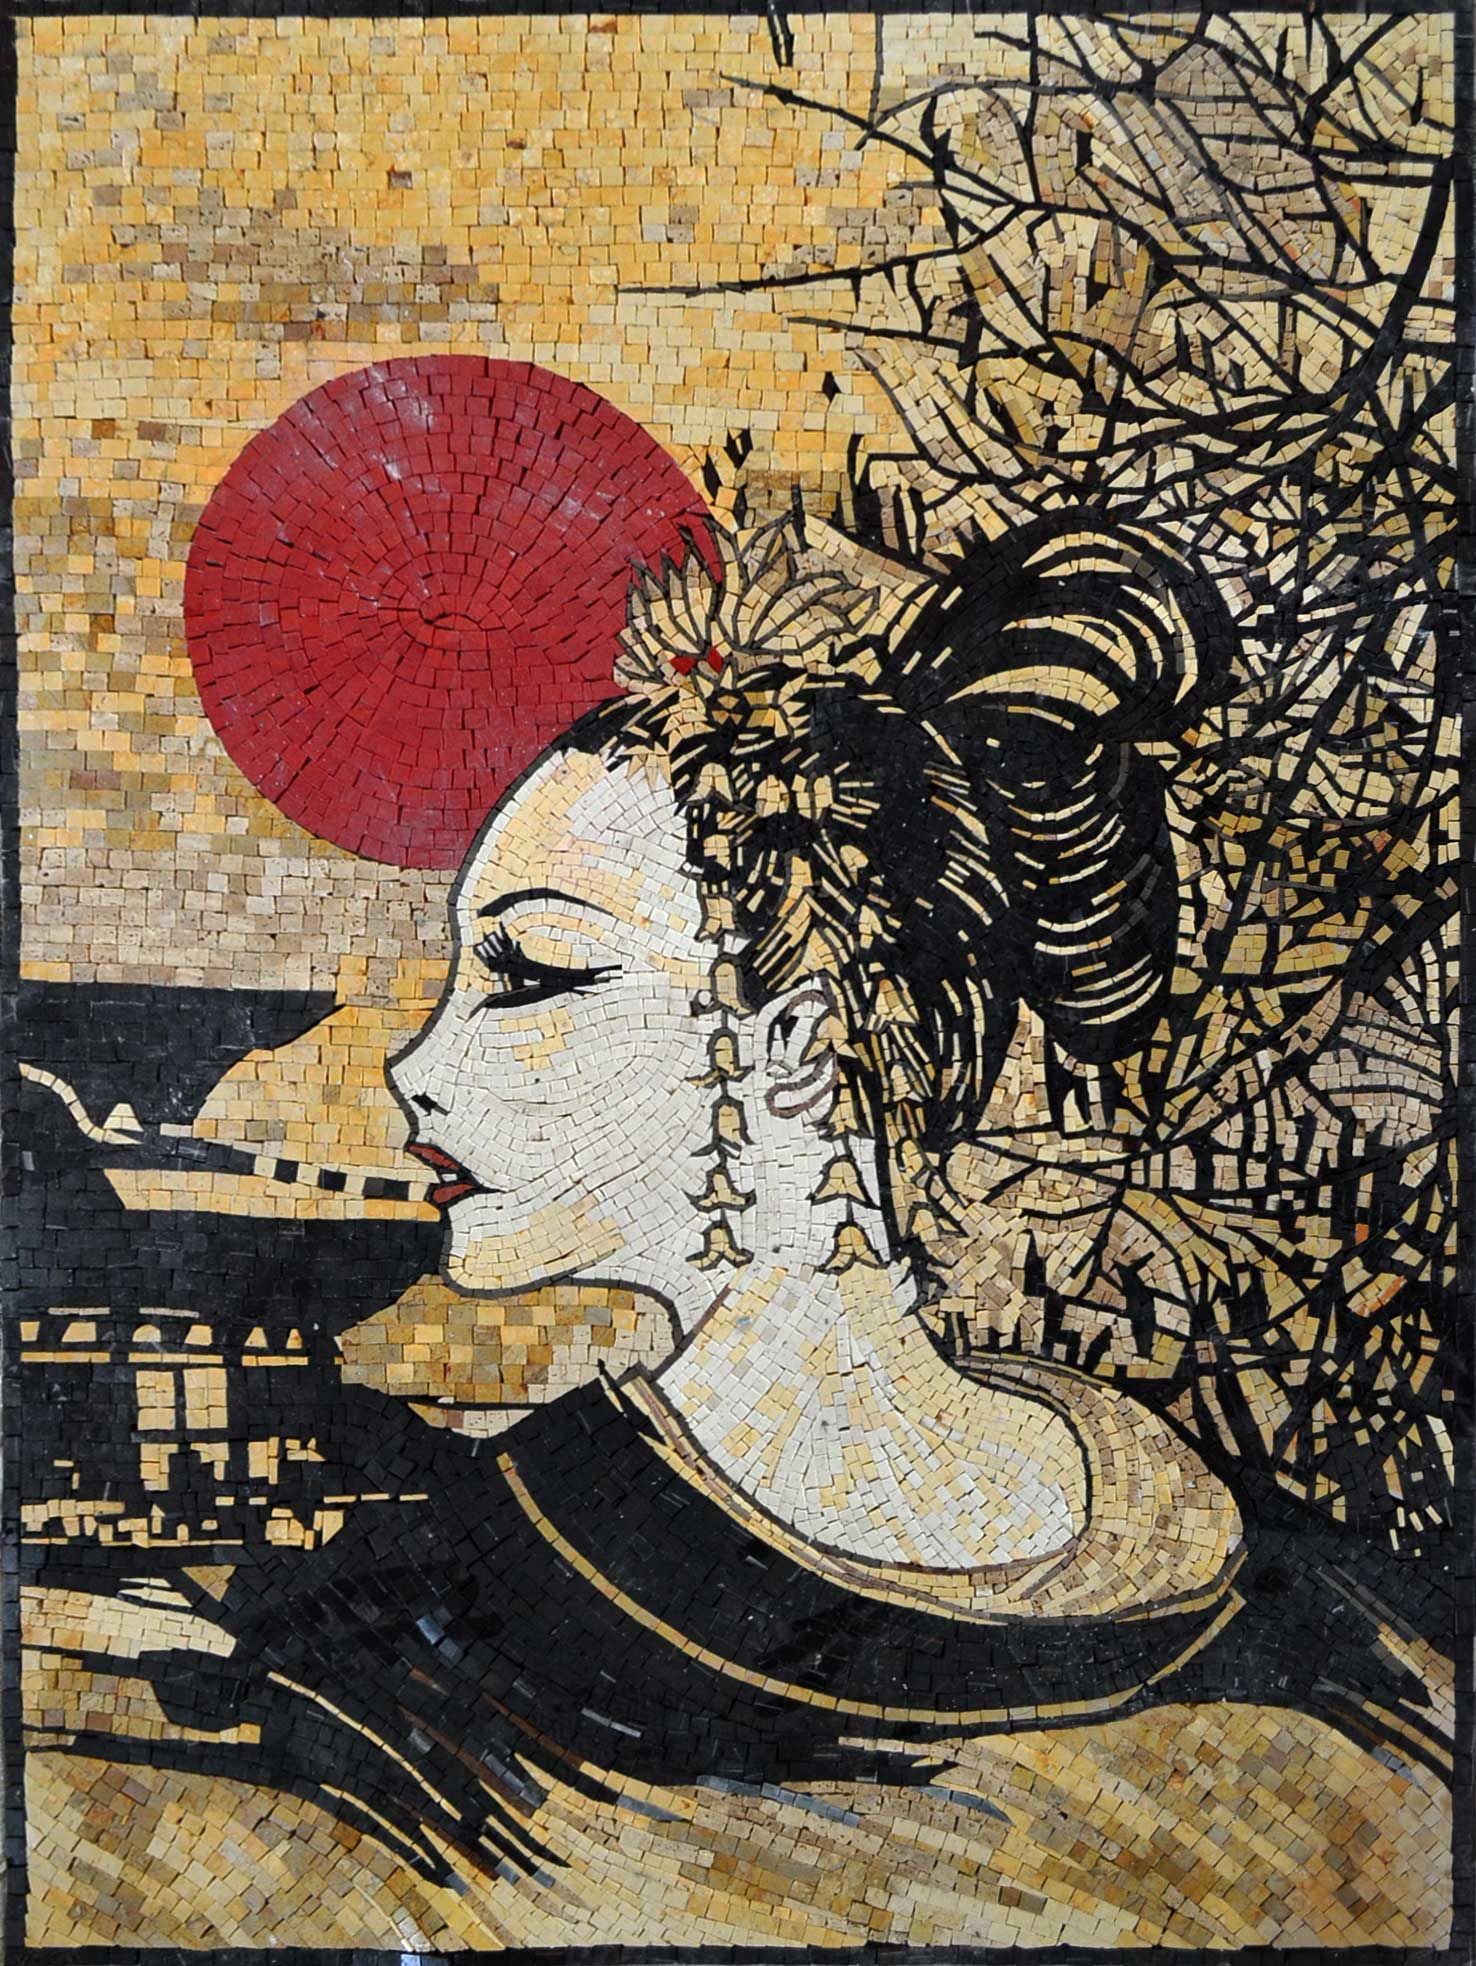 asian geisha artwork japanese geisha marble mosaic tile stones asian geisha artwork japanese geisha marble mosaic tile stones art wall mural ebay